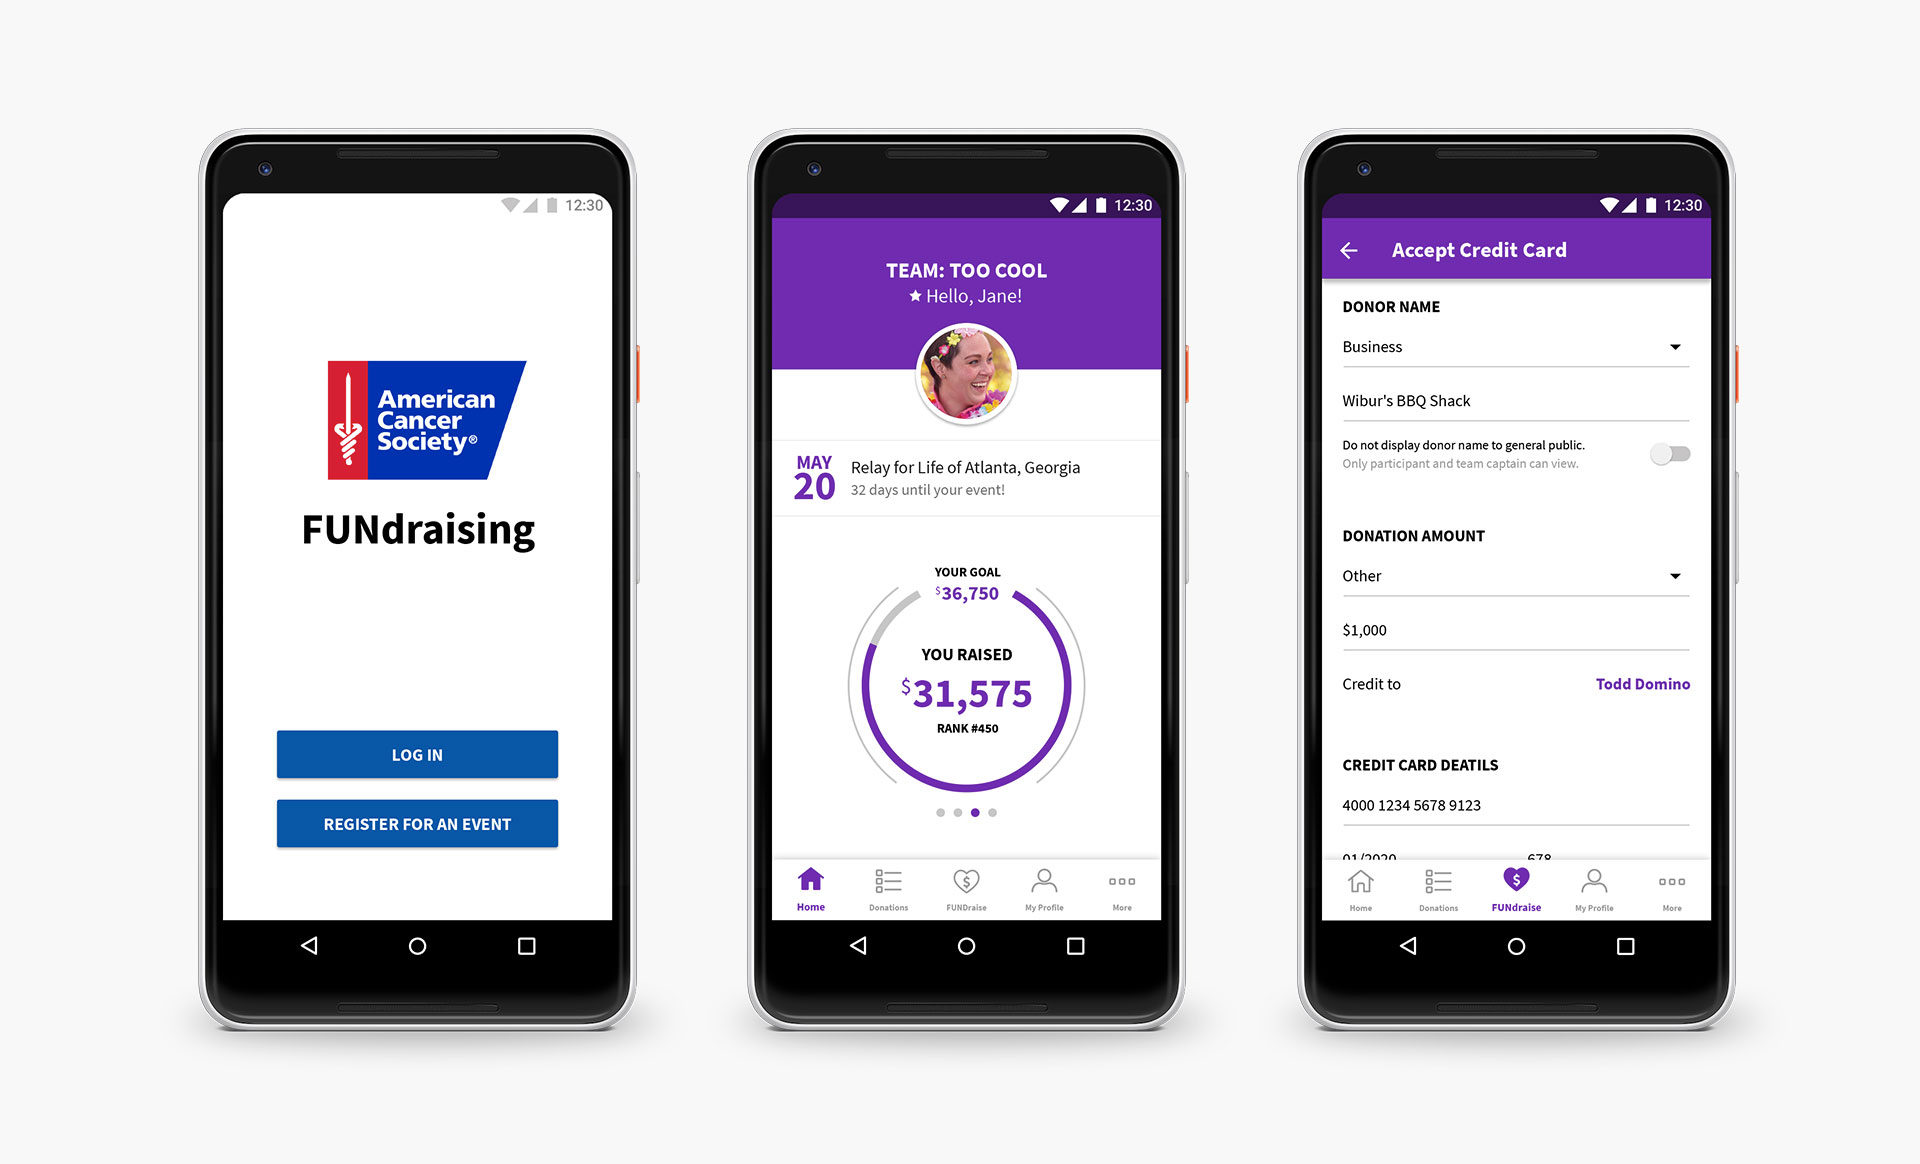 Mobile phones showcasing the Android version of the ACS mobile fundraising app.